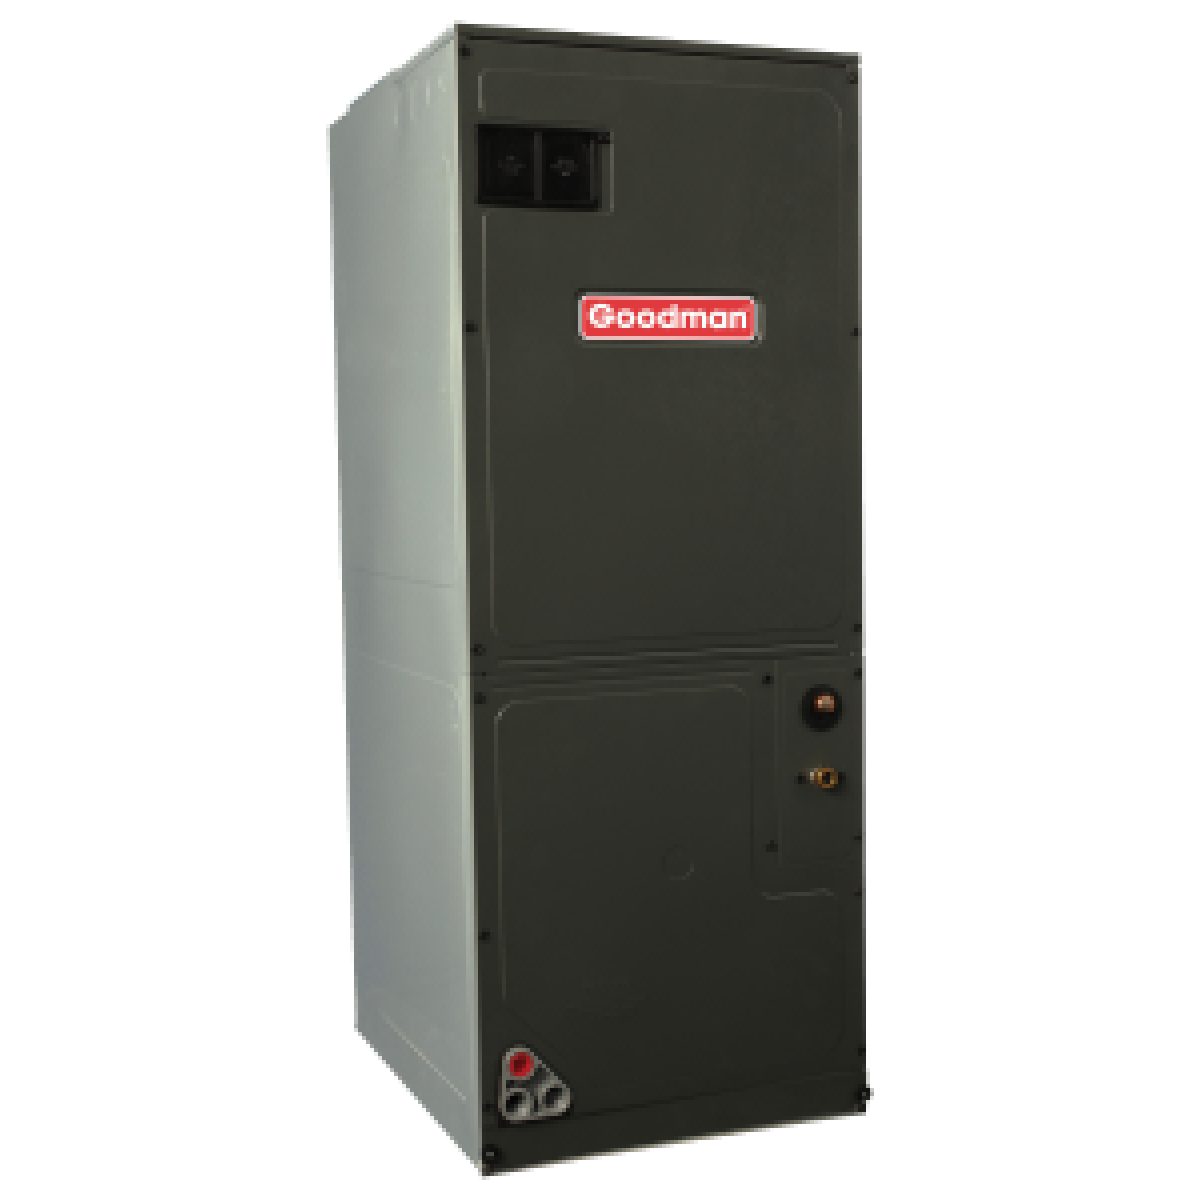 Goodman 2 5 Ton 15 Seer Heat Pump Split System In 2 5 Ton